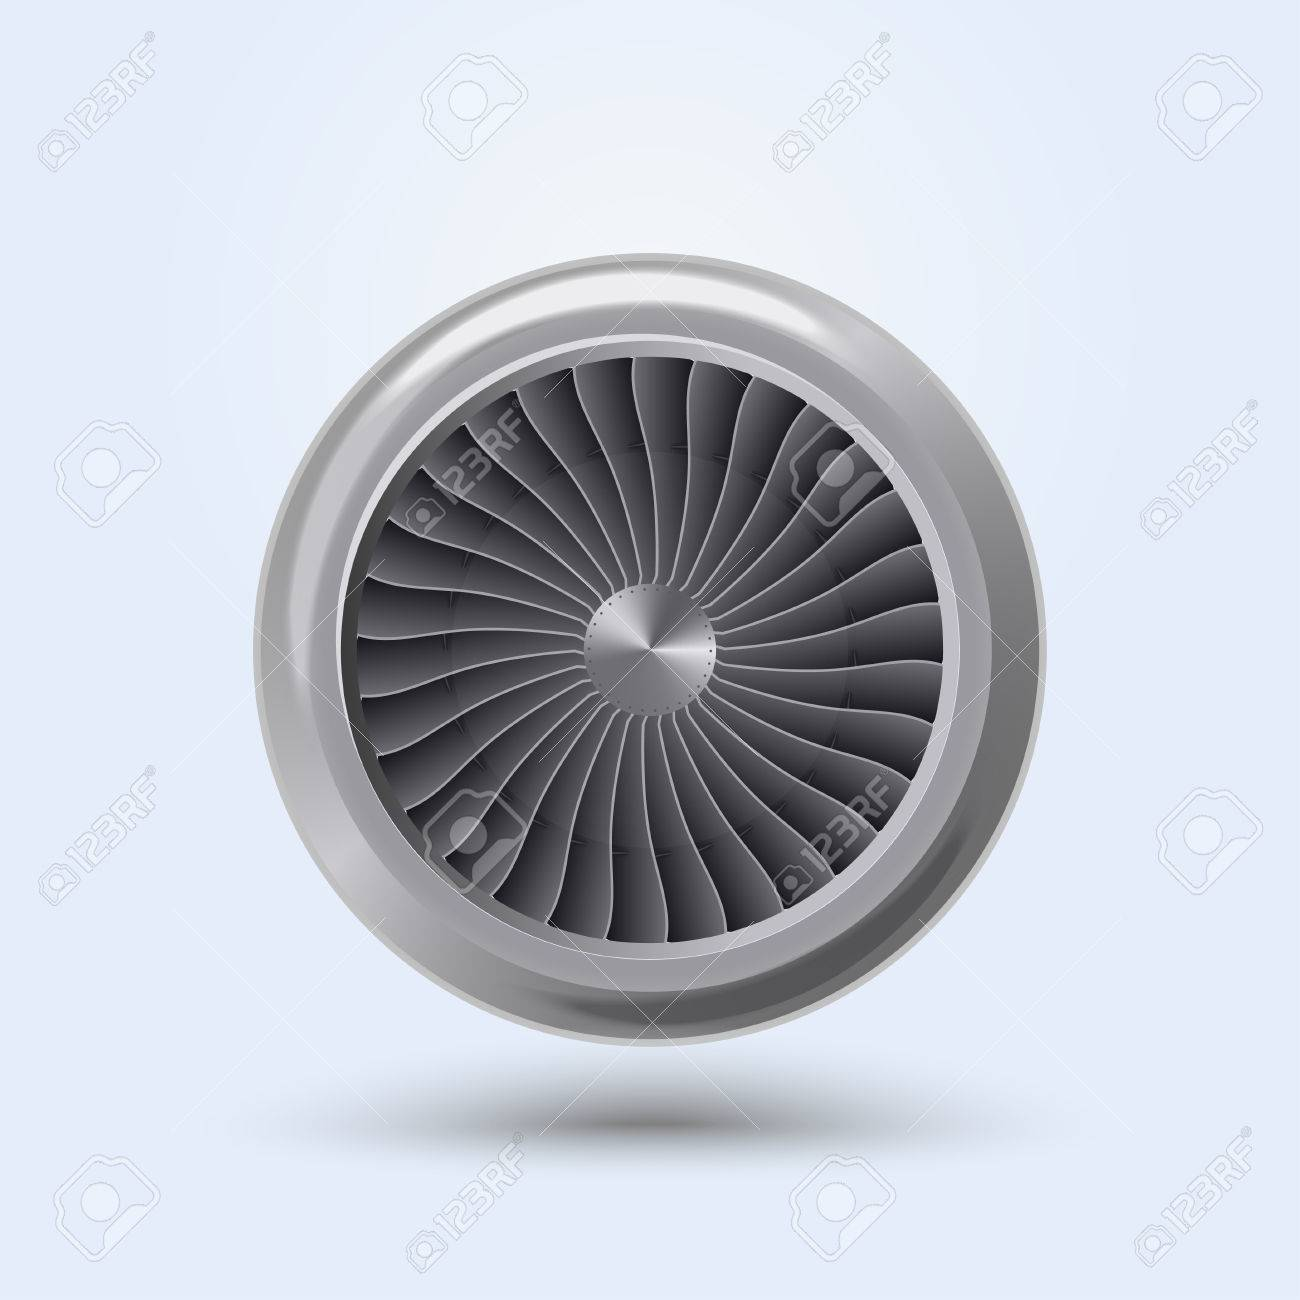 Jet Engine Realistic front view, aircraft turbine energy fan. Vector - 48534002